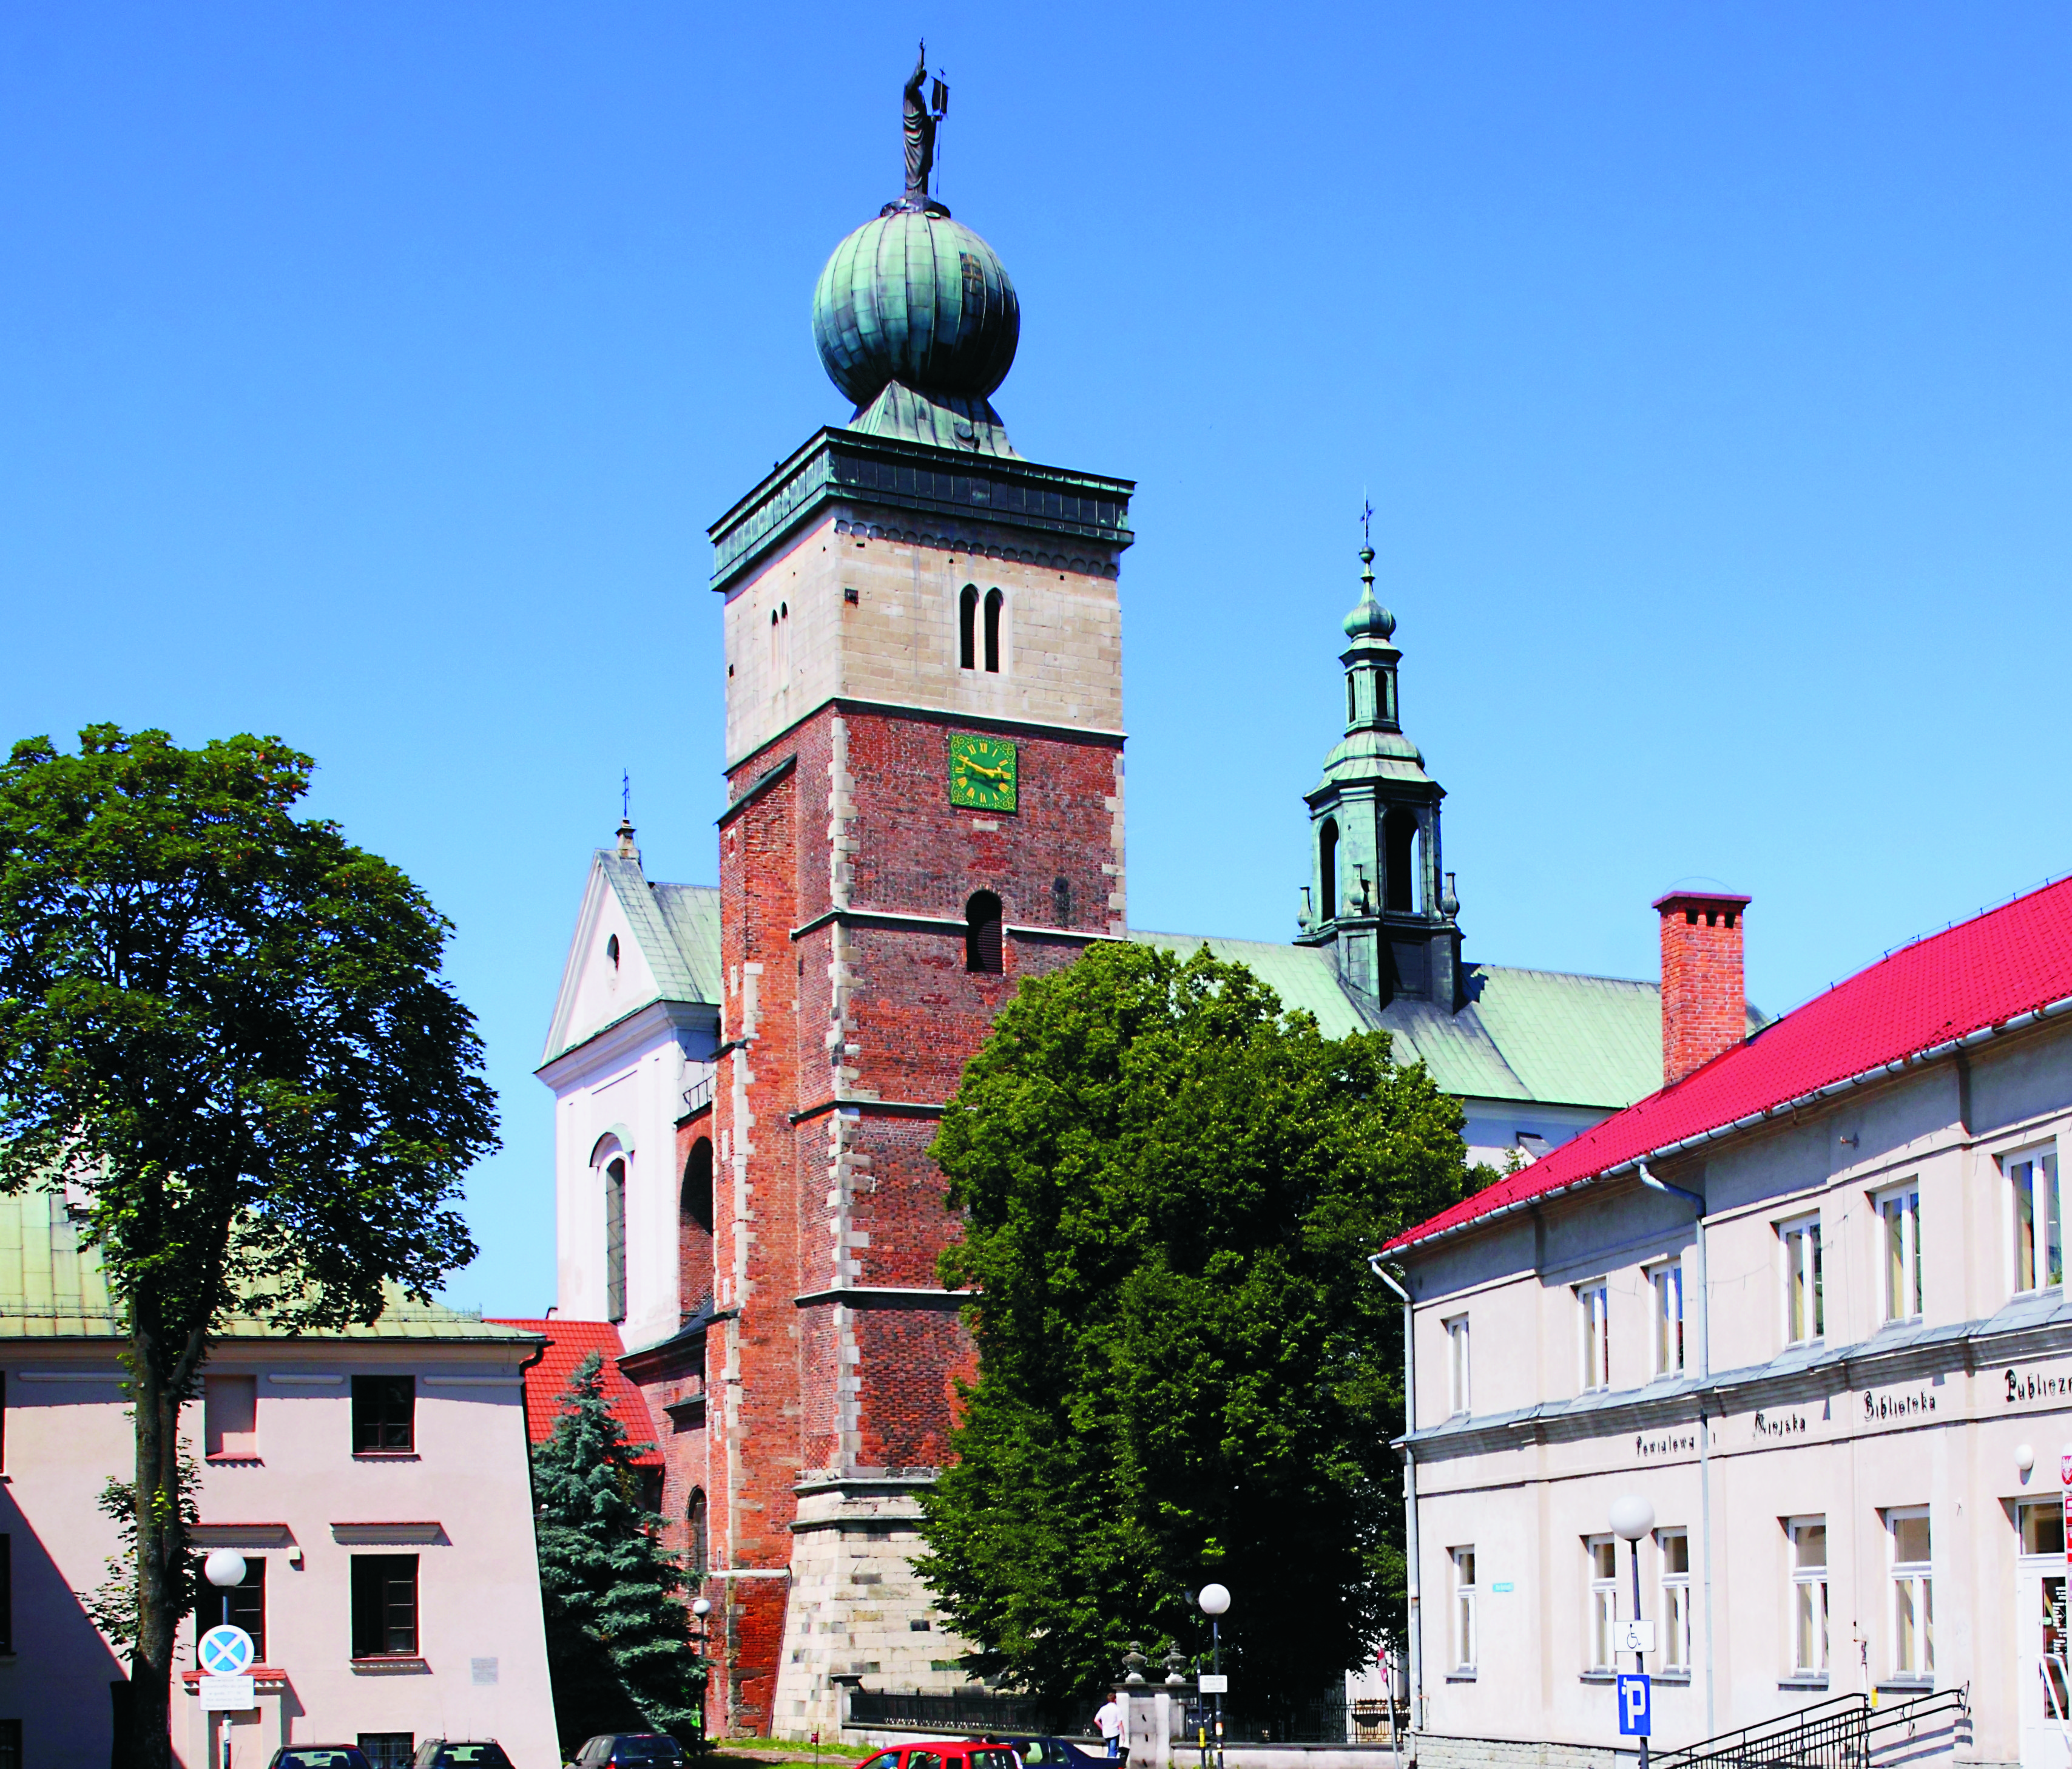 Image: Church of the Holy Sepulchre in Miechów